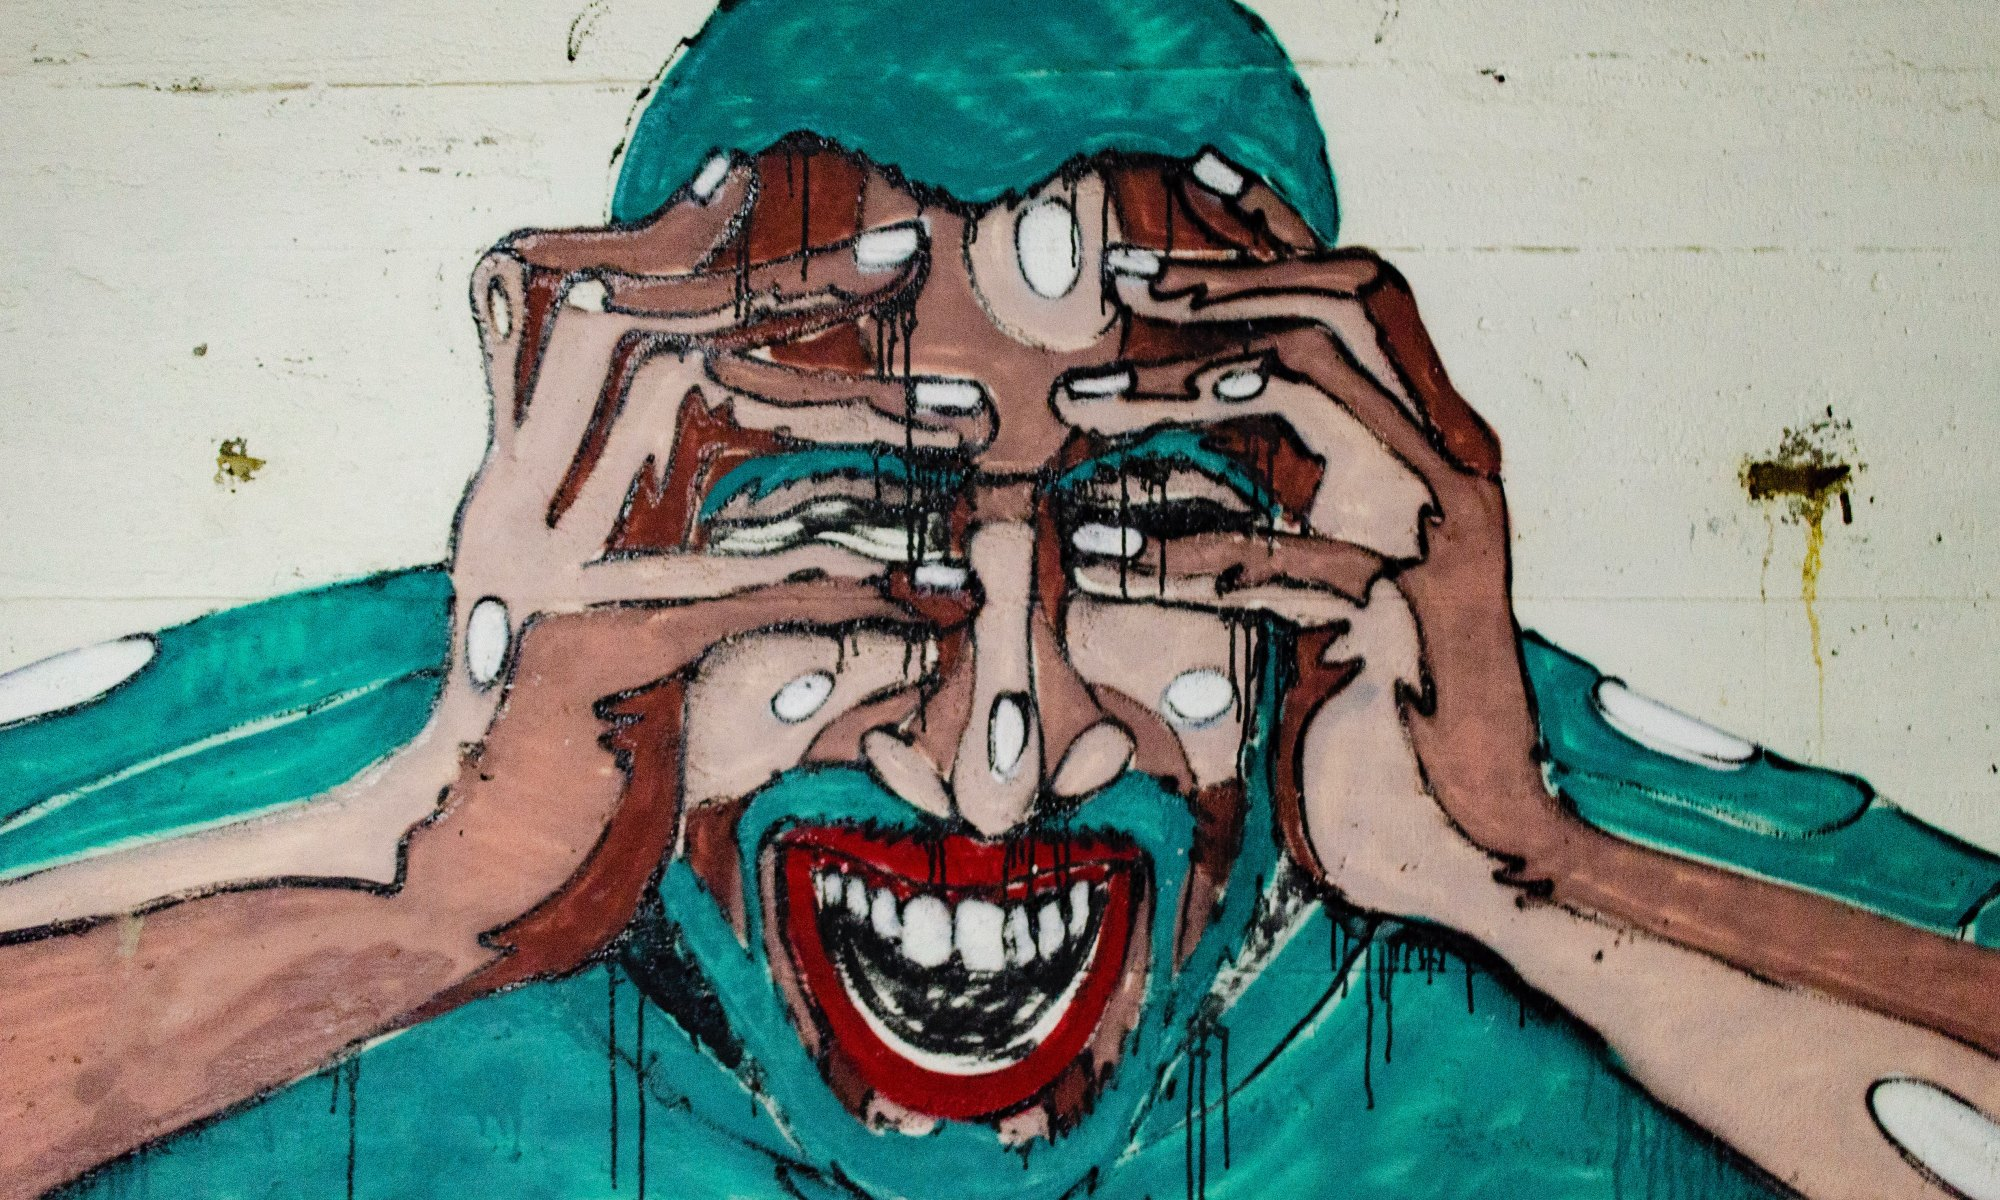 Graffiti of a stressed African American man with hands on his face